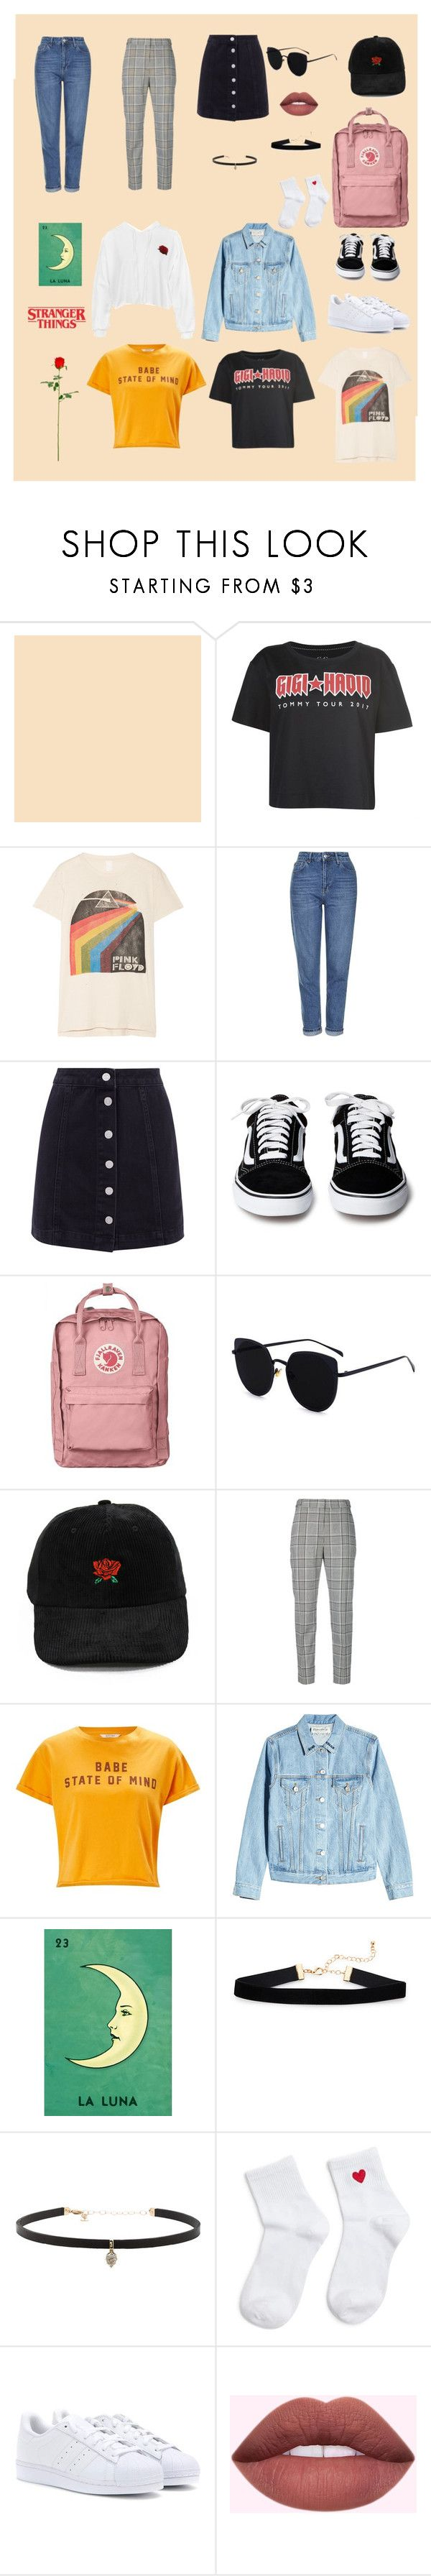 """""""Untitled #171"""" by ramadinanisa ❤ liked on Polyvore featuring Tommy Hilfiger, MadeWorn, Topshop, Alexander Wang, Miss Selfridge, Être Cécile, Carbon & Hyde, Forever 21, adidas Originals and Sans Souci"""